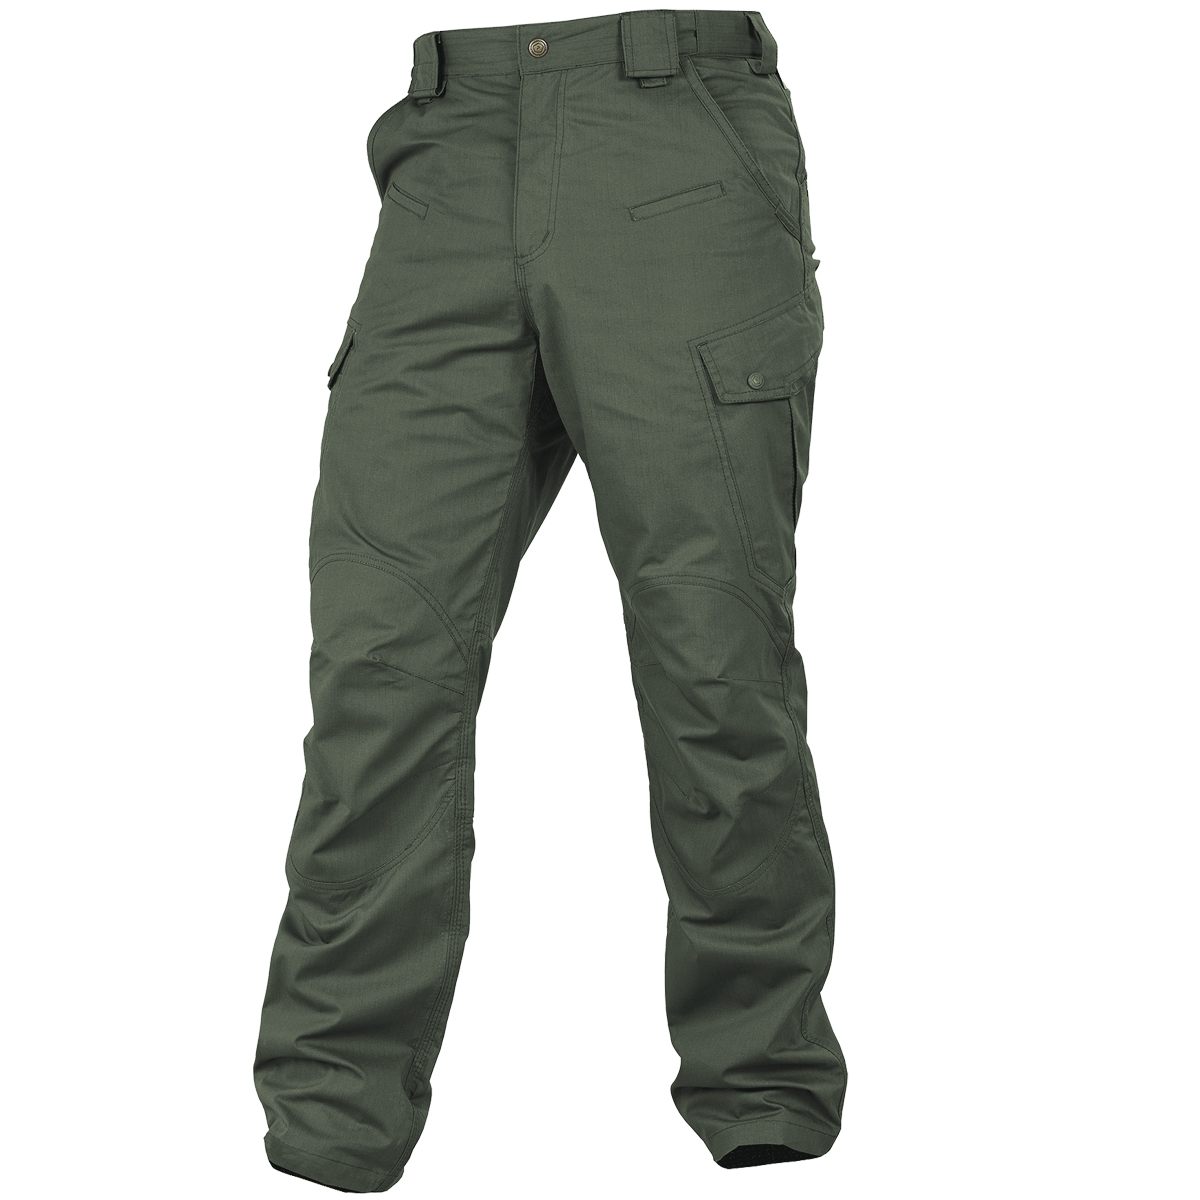 green tactical pants - Pi Pants